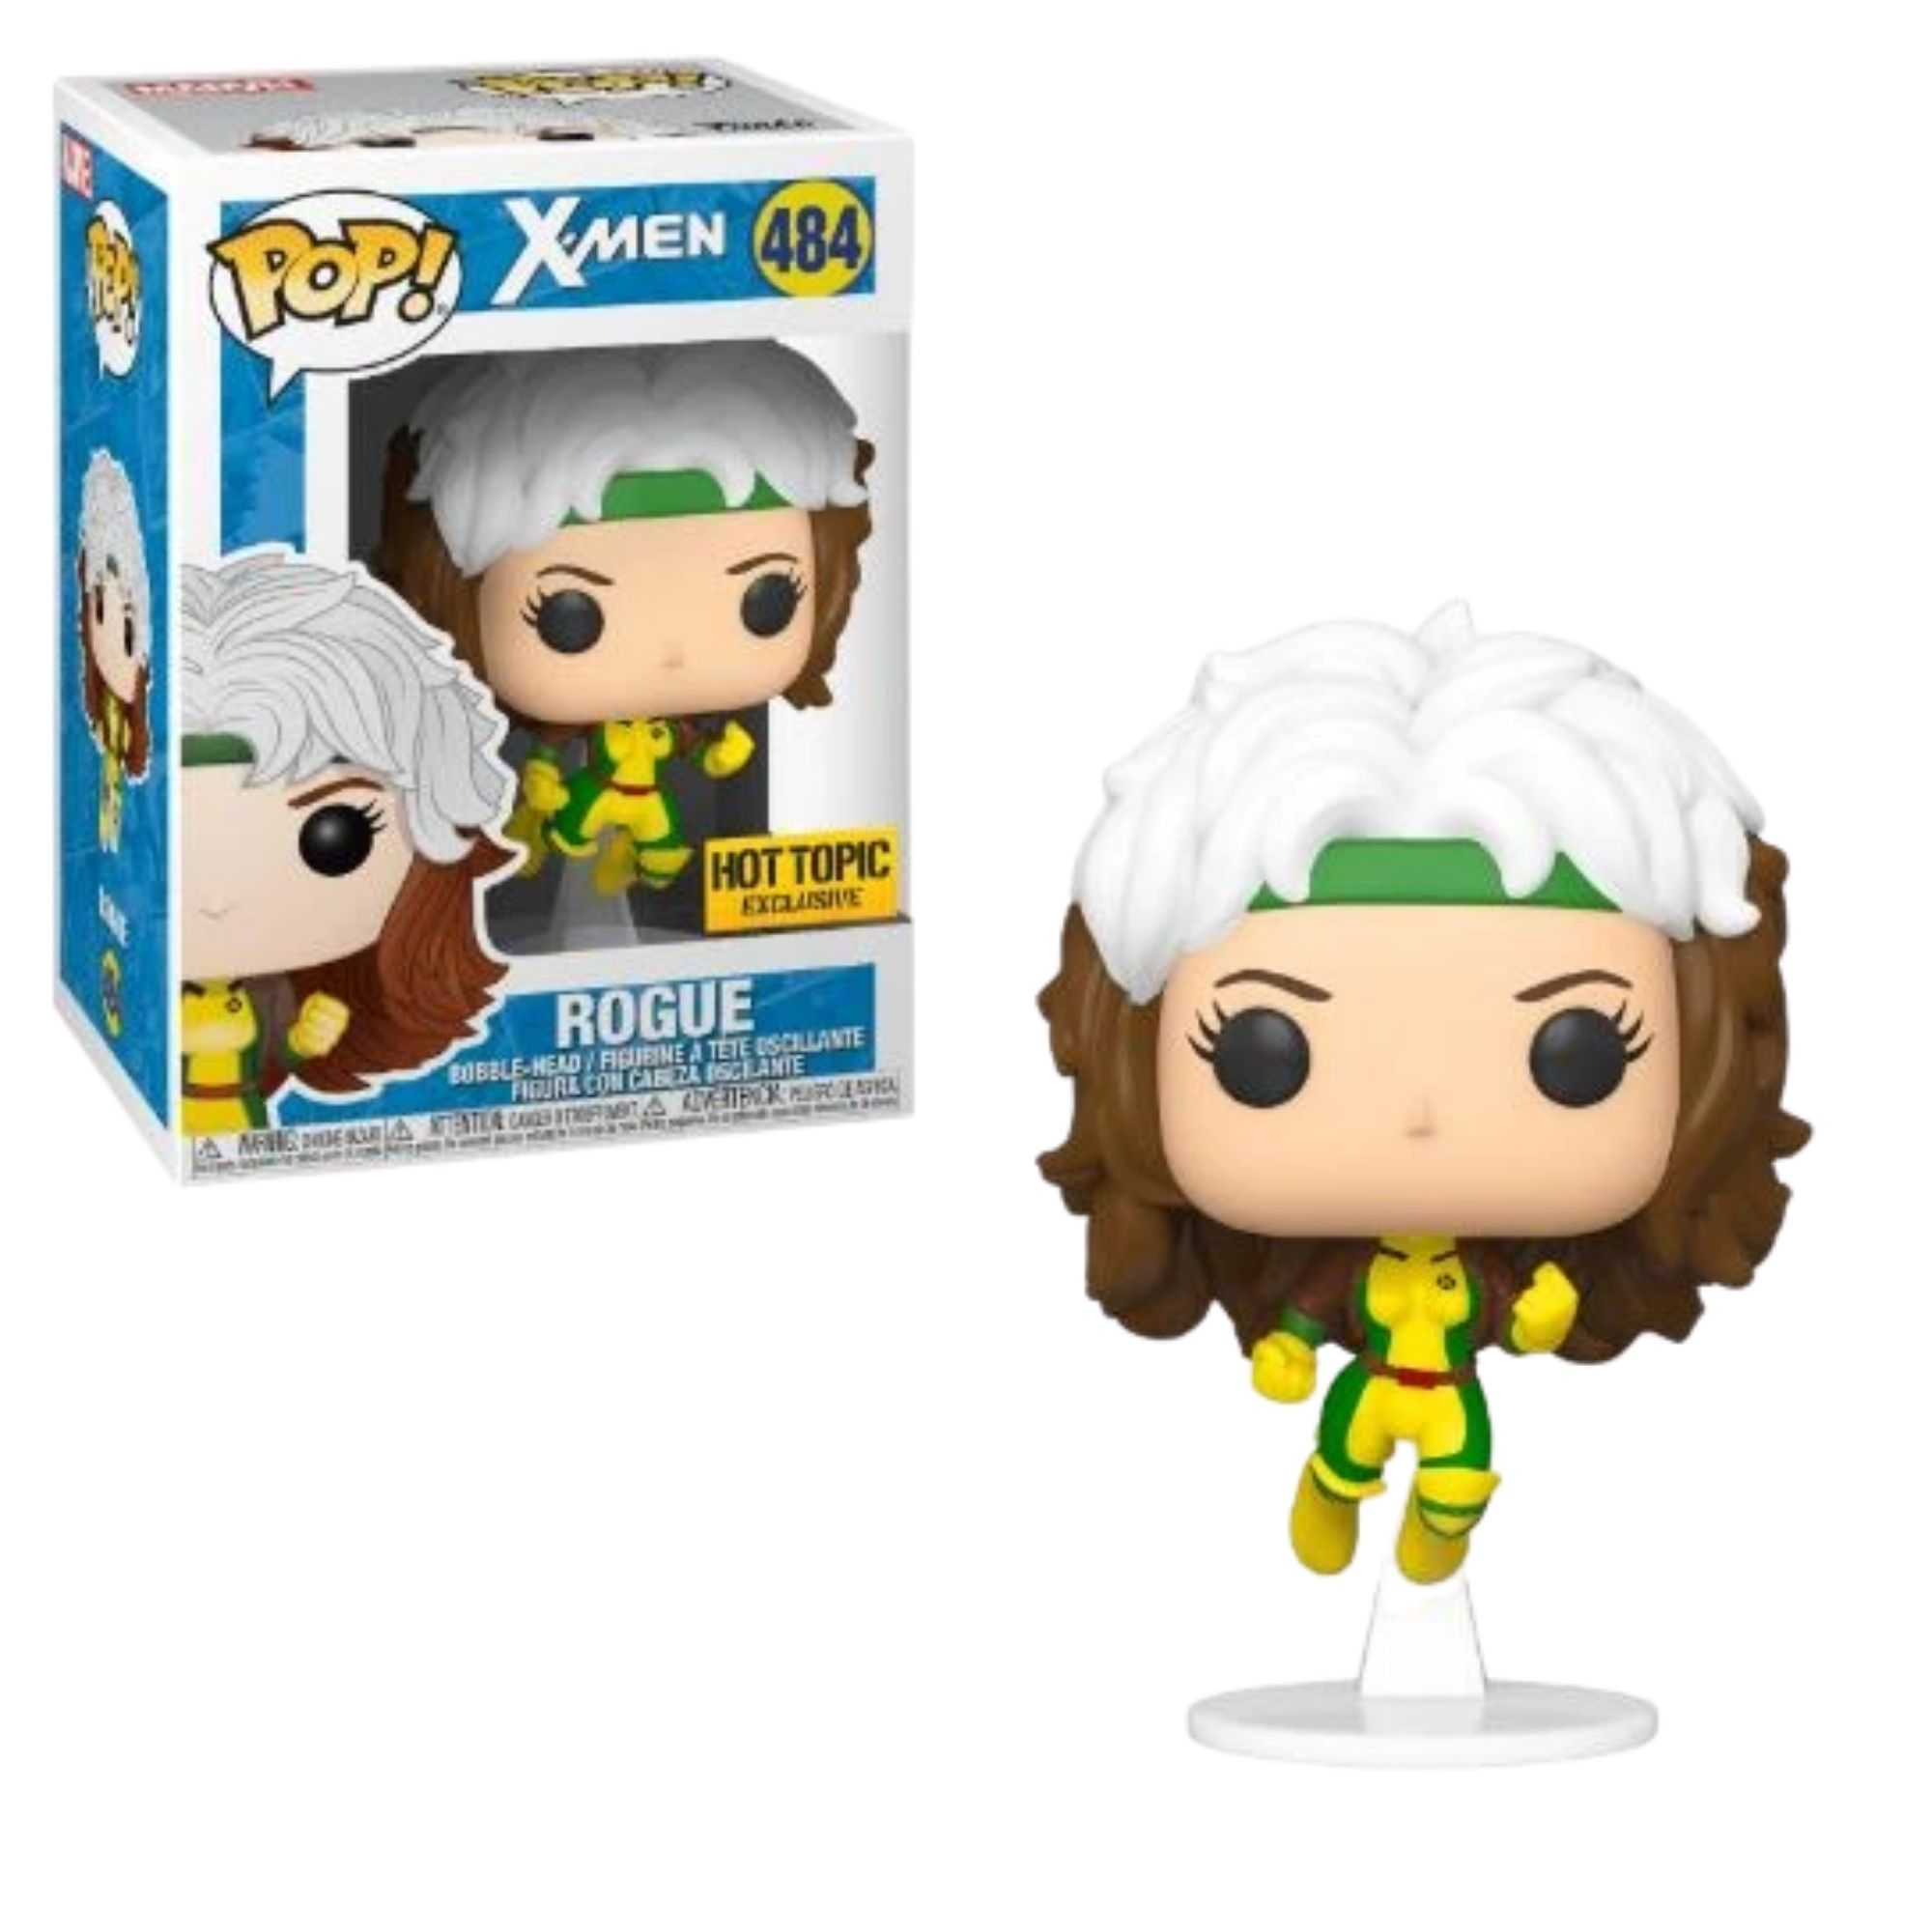 Funko Pop X-Men Rogue Hot Topic #484  - Game Land Brinquedos